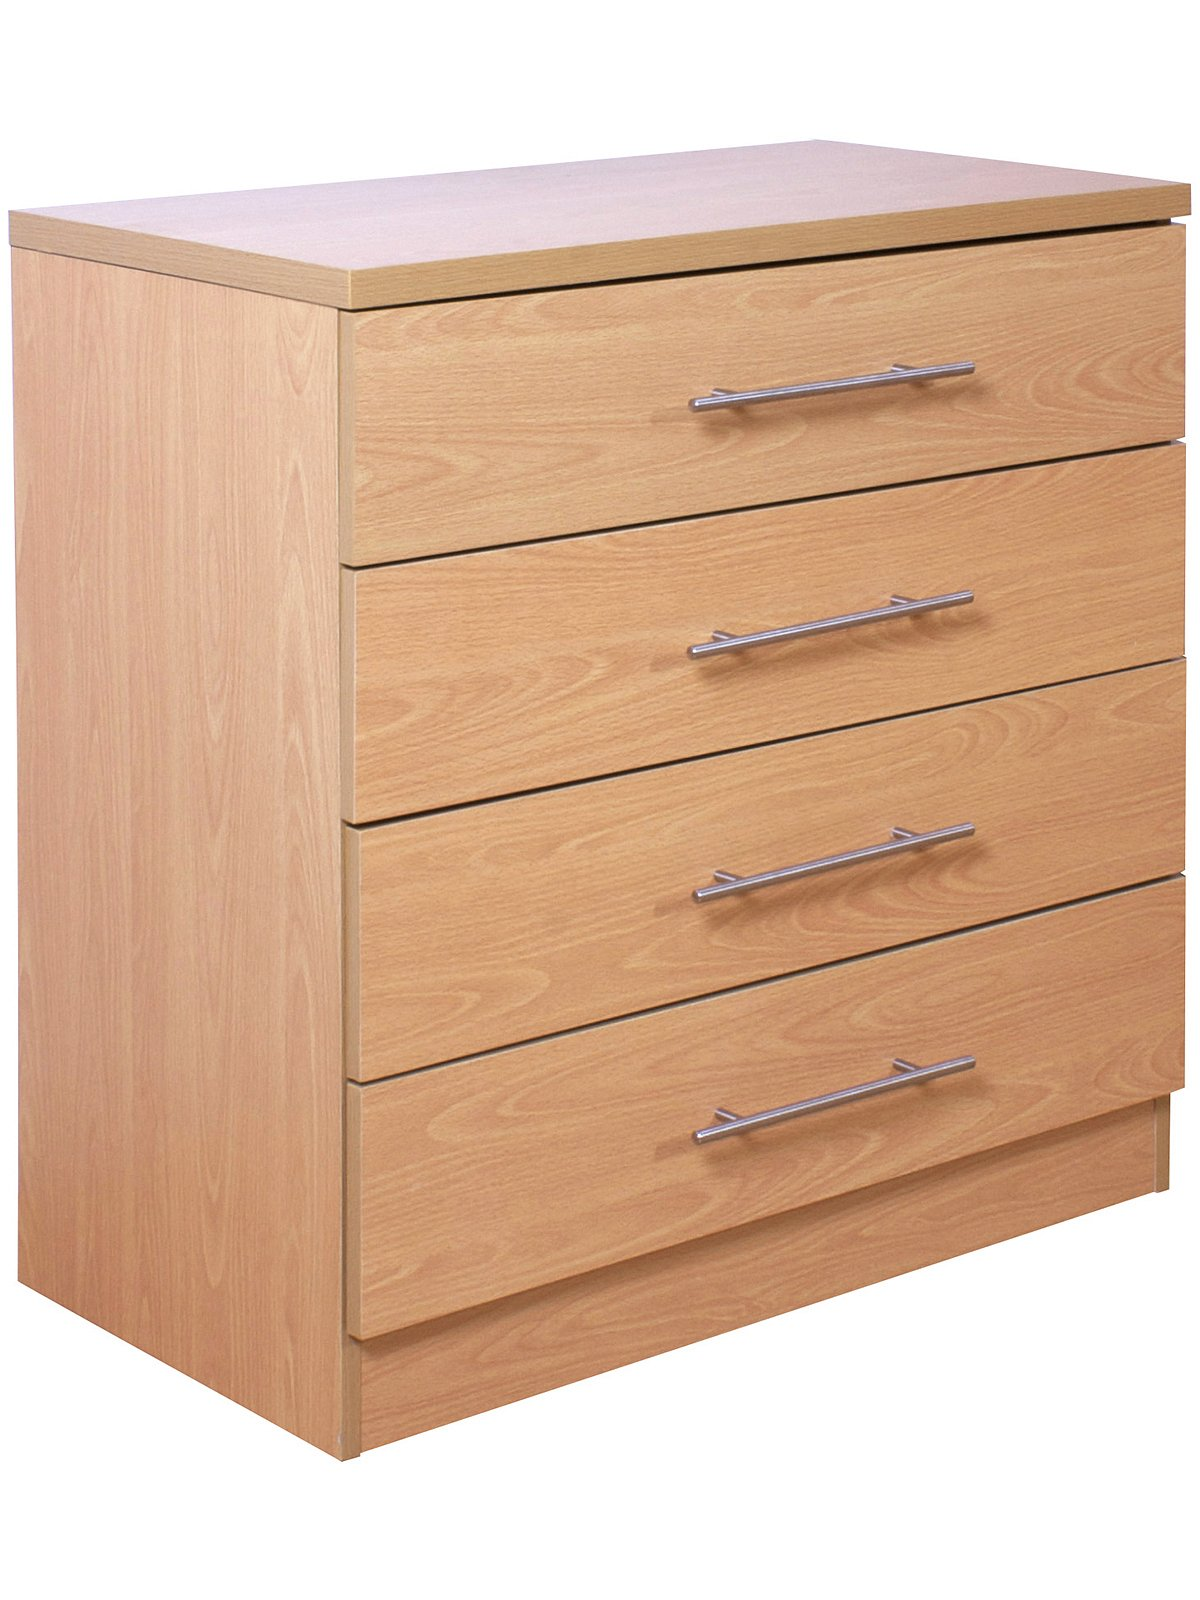 drawer chest modern four image oak peek wood white drawers previous blu dot wo dresser whote kids